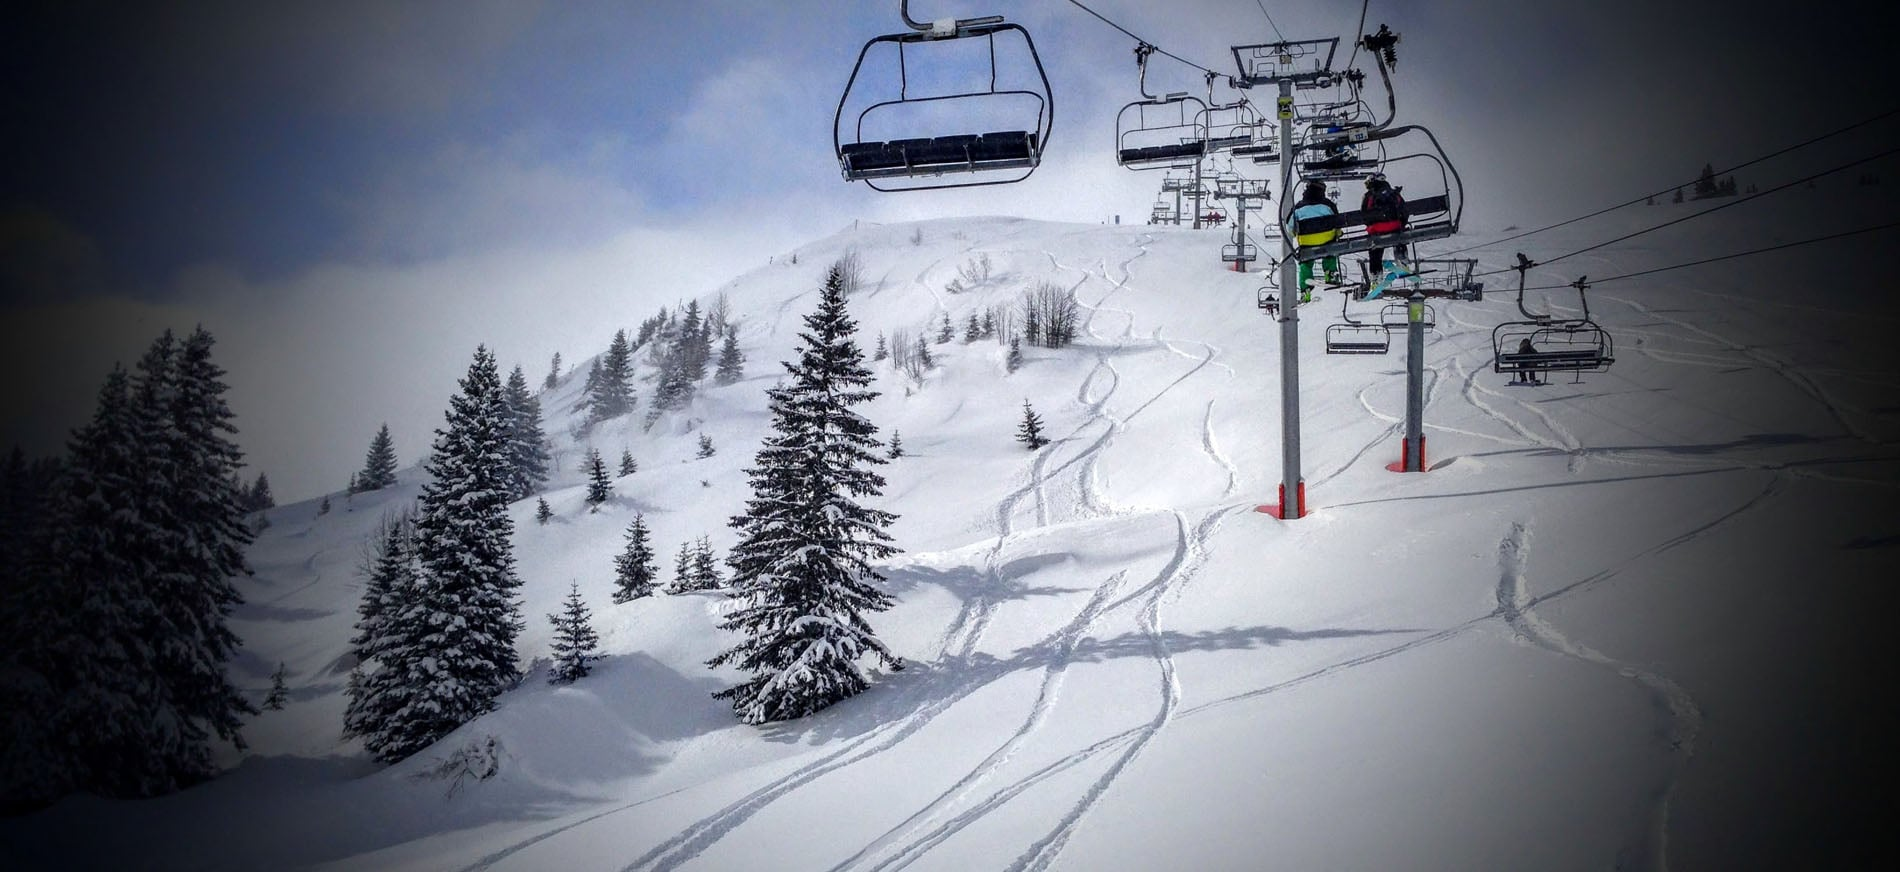 Snowy Avoriaz lifts and powder lines